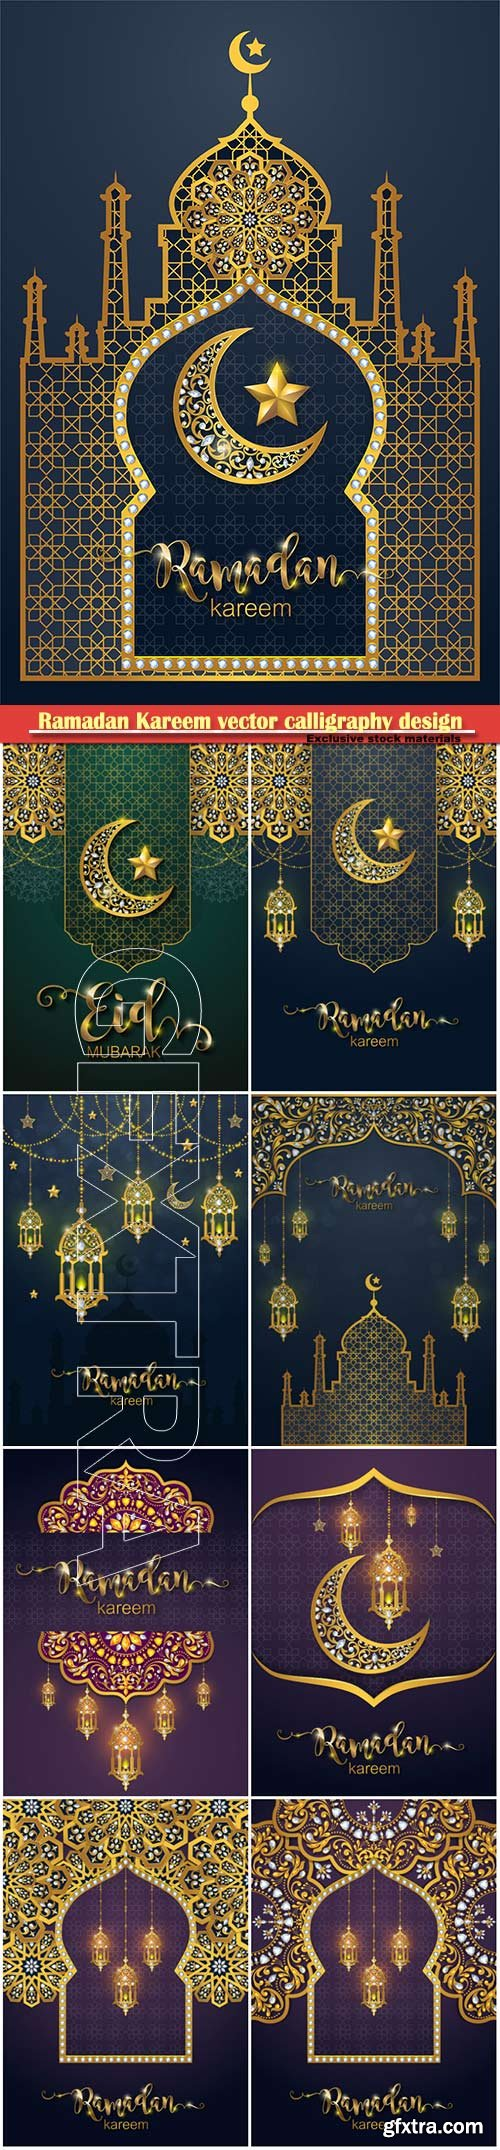 Ramadan Kareem vector calligraphy design with decorative floral pattern, mosque silhouette, crescent and glittering islamic background # 32